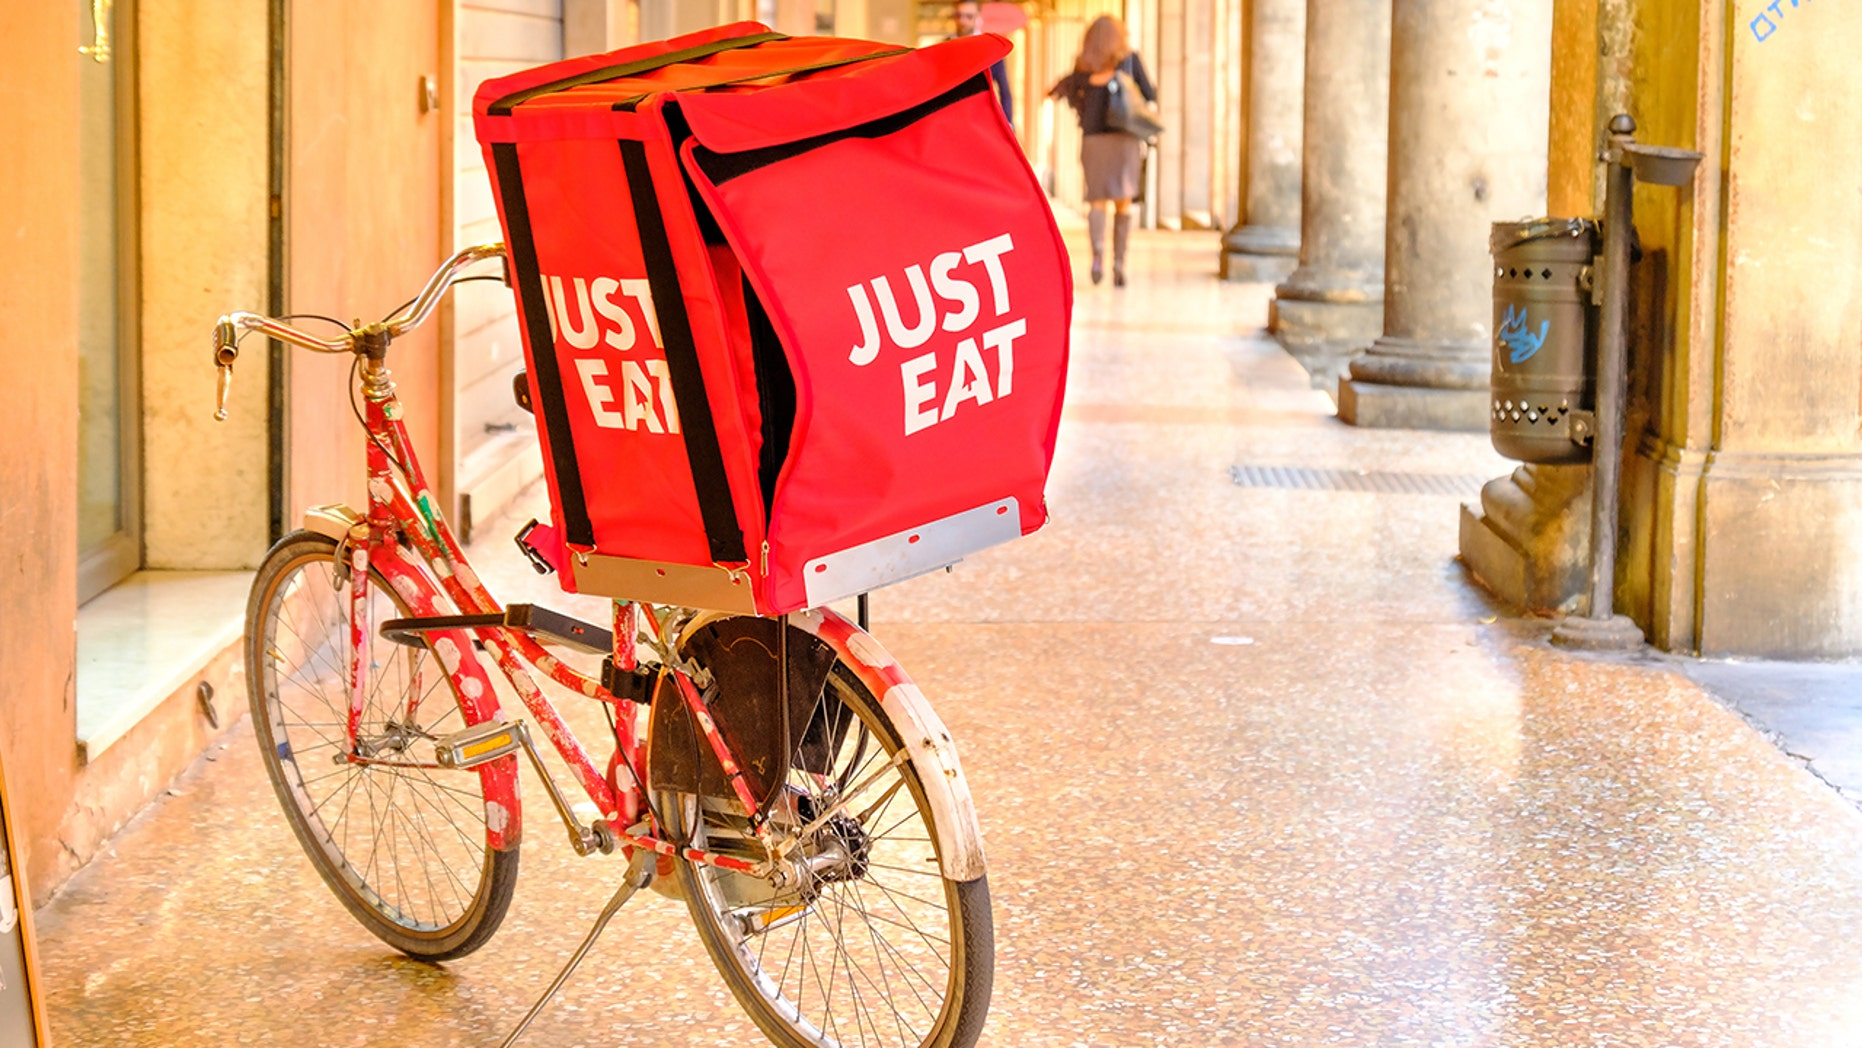 A woman says a Just Eat delivery man harassed her over text and company did not respond how she expected.